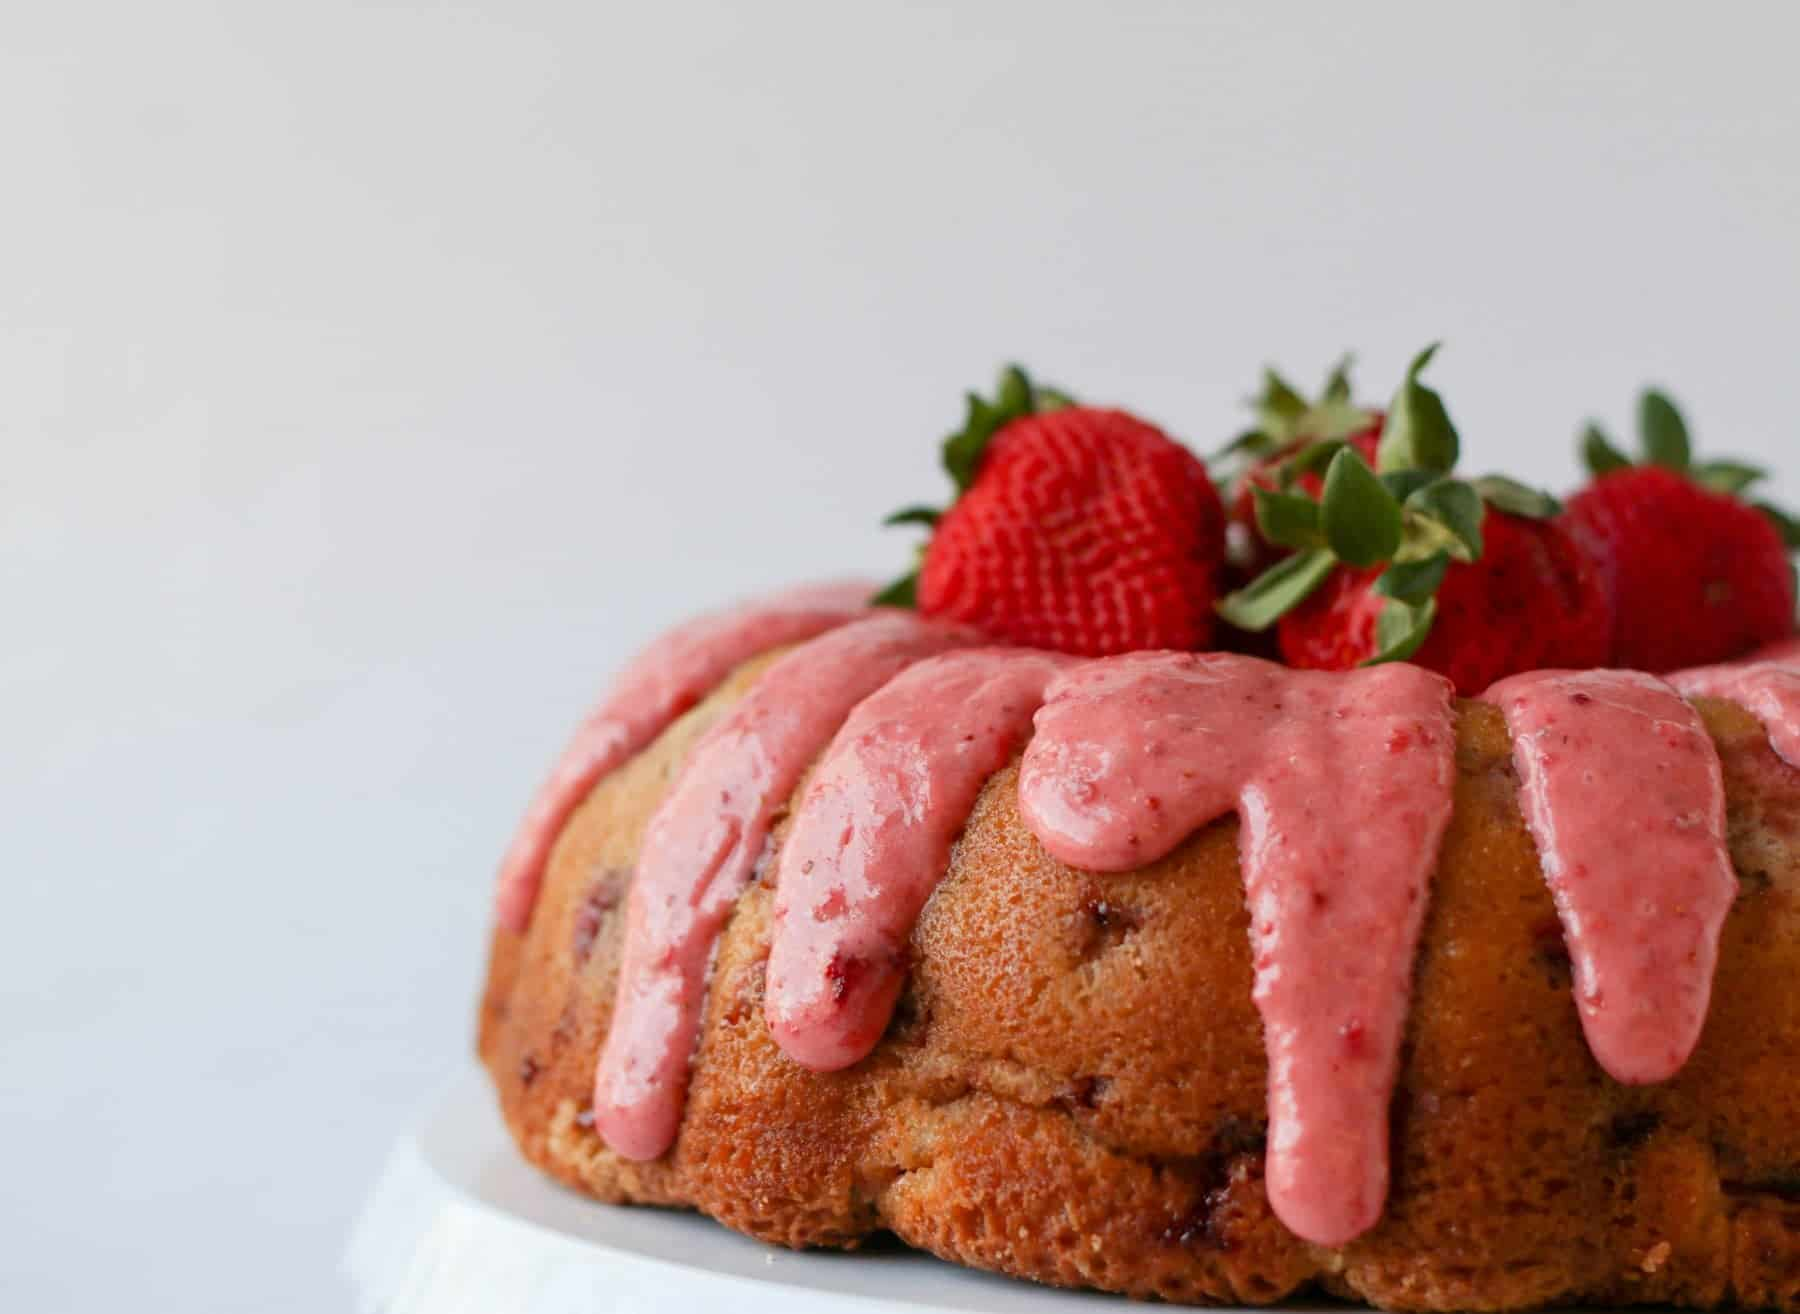 strawberry pound cake on a cake stand with fresh strawberries